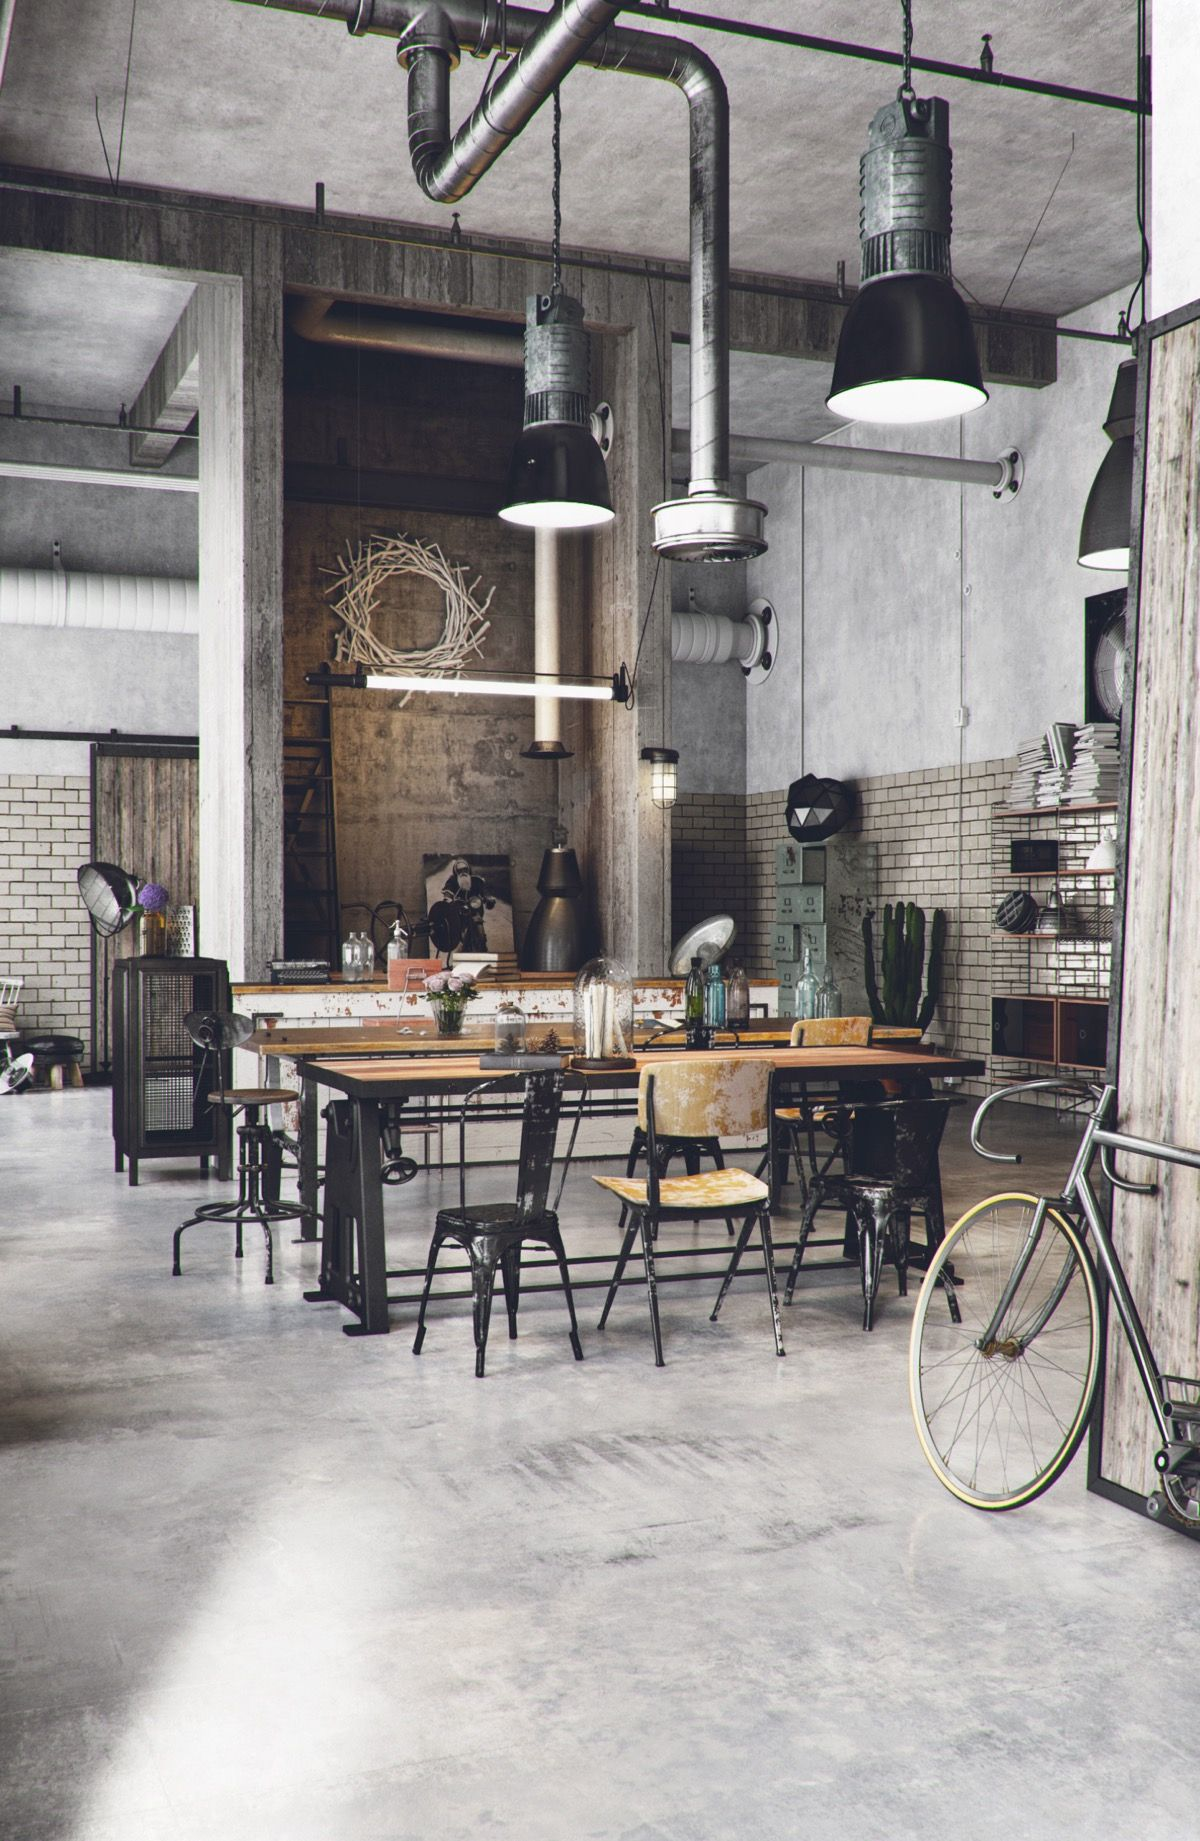 industrial style dining room What's Hot On Pinterest Industrial Style Dining Room! Whats Hot On Pinterest Industrial Style Dining Room2